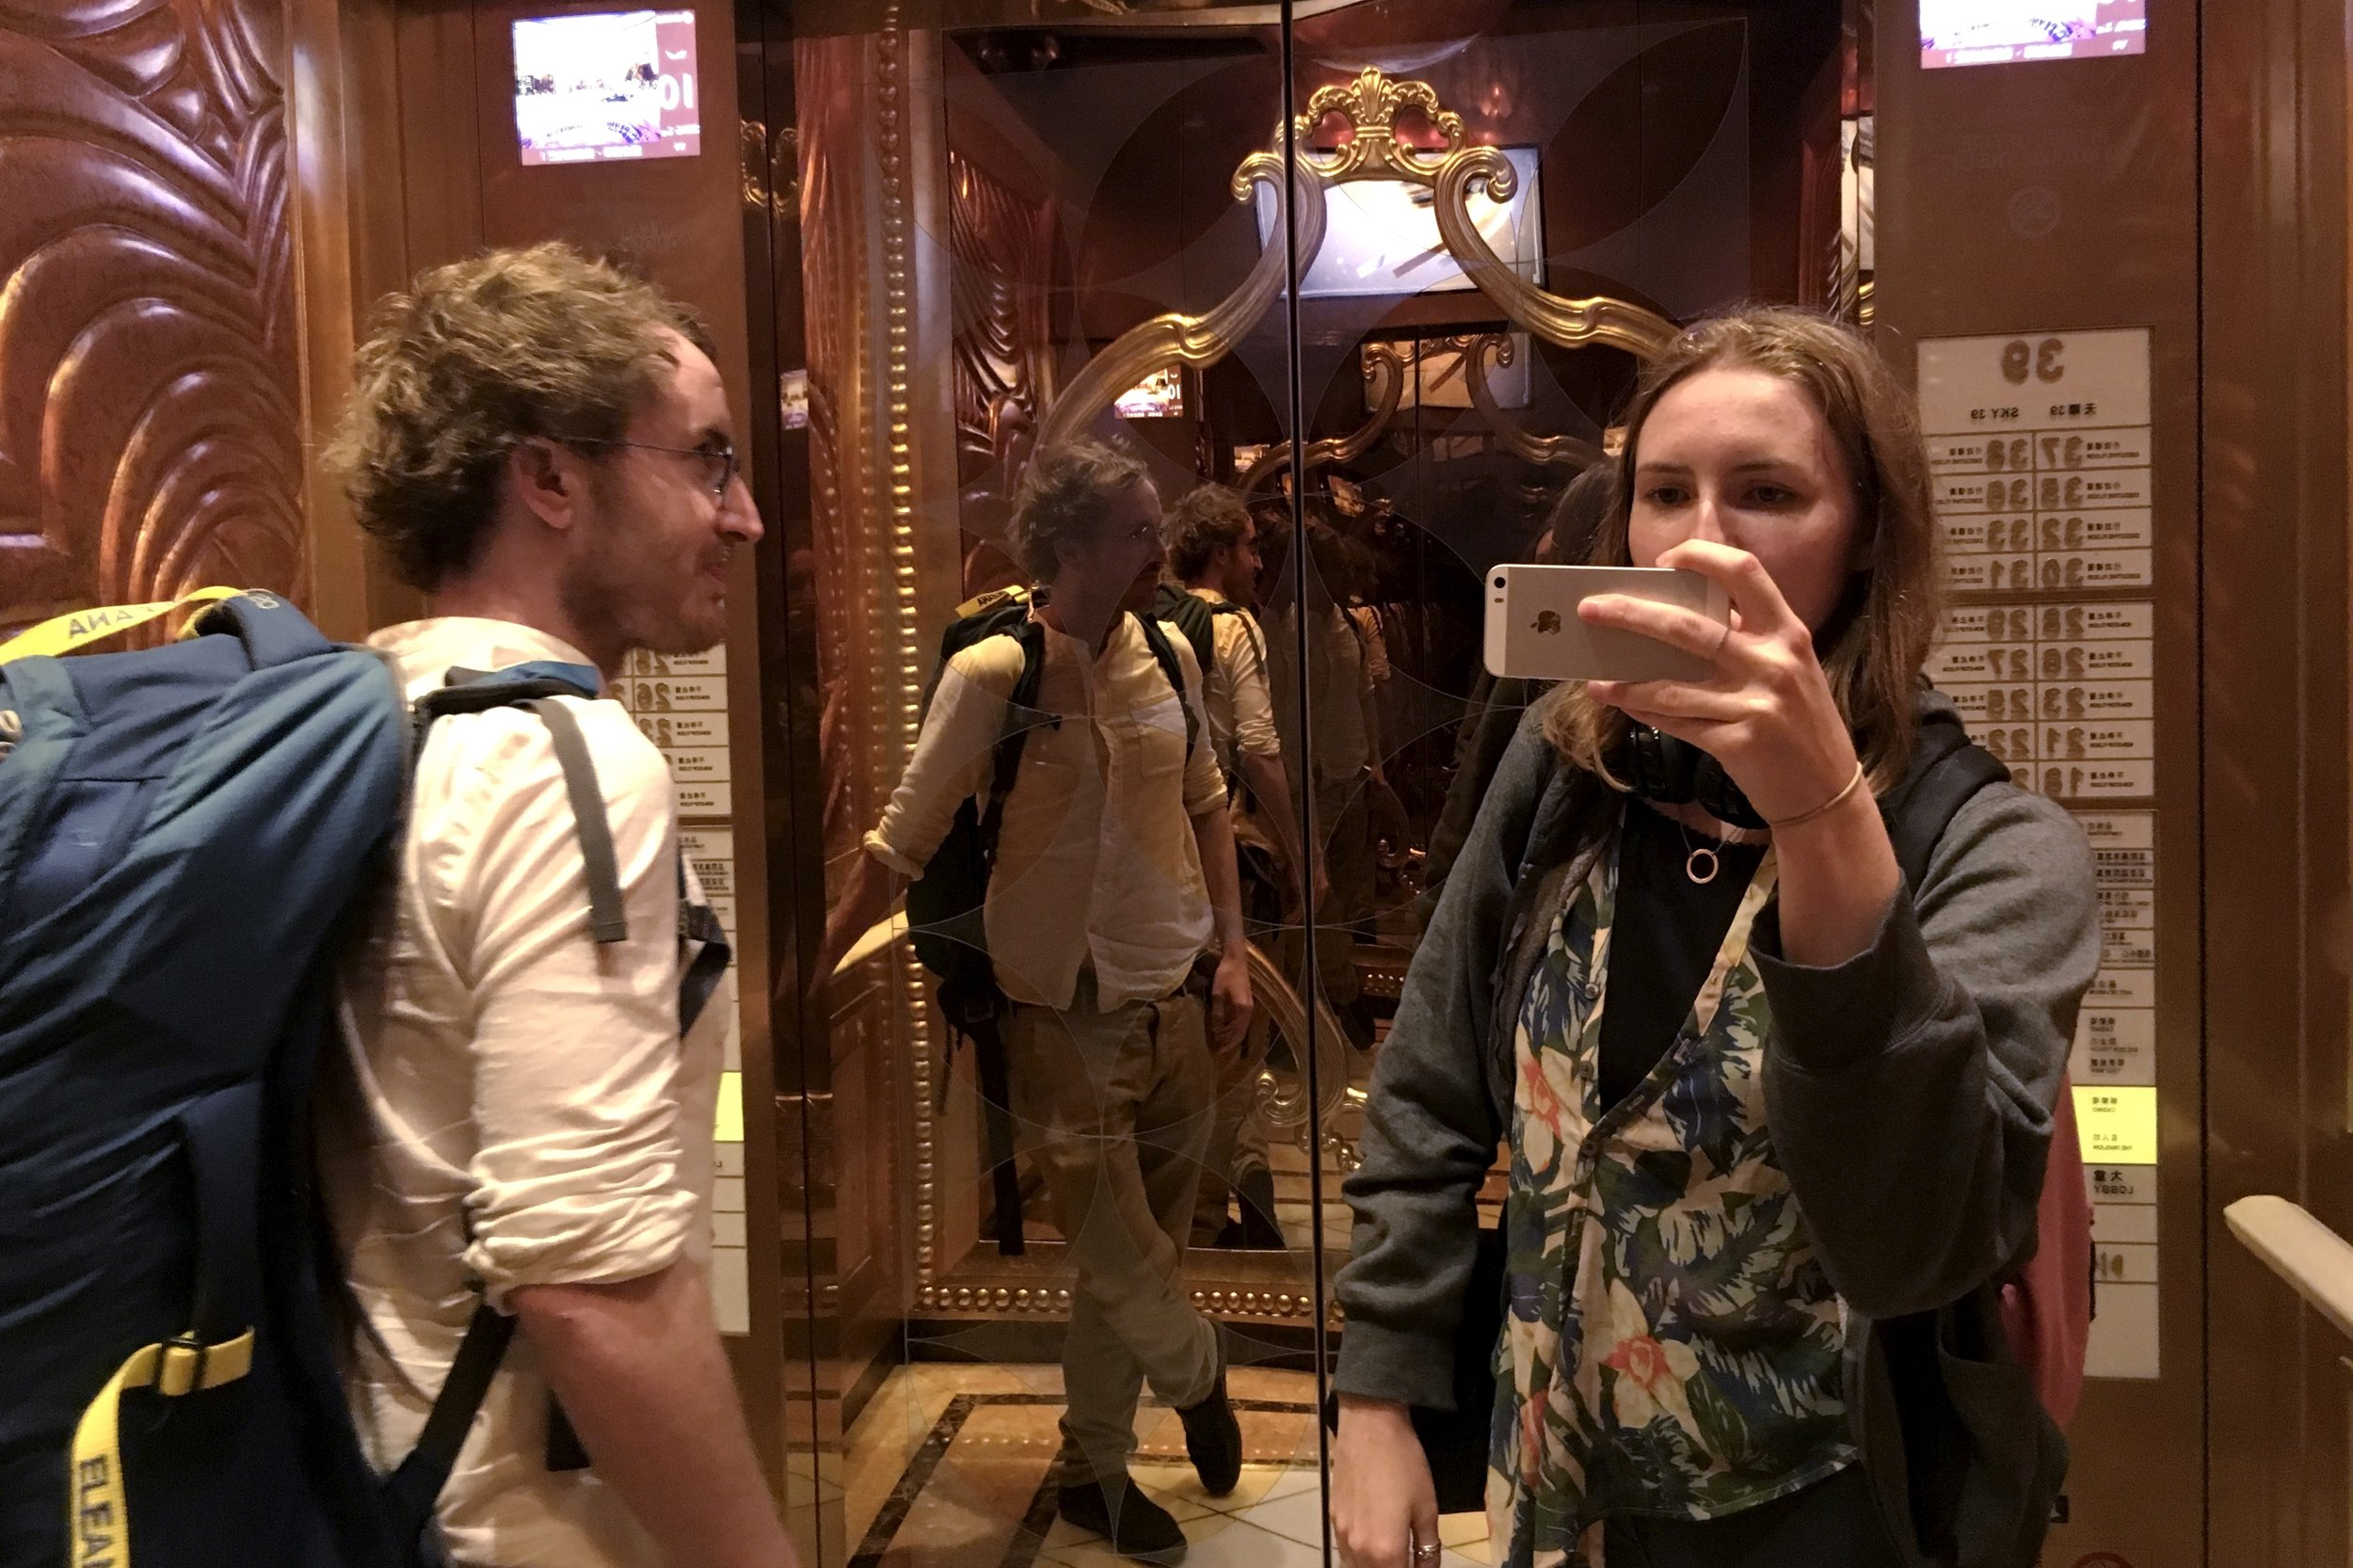 My brother/pack-mule and me in a Macanese casino elevator